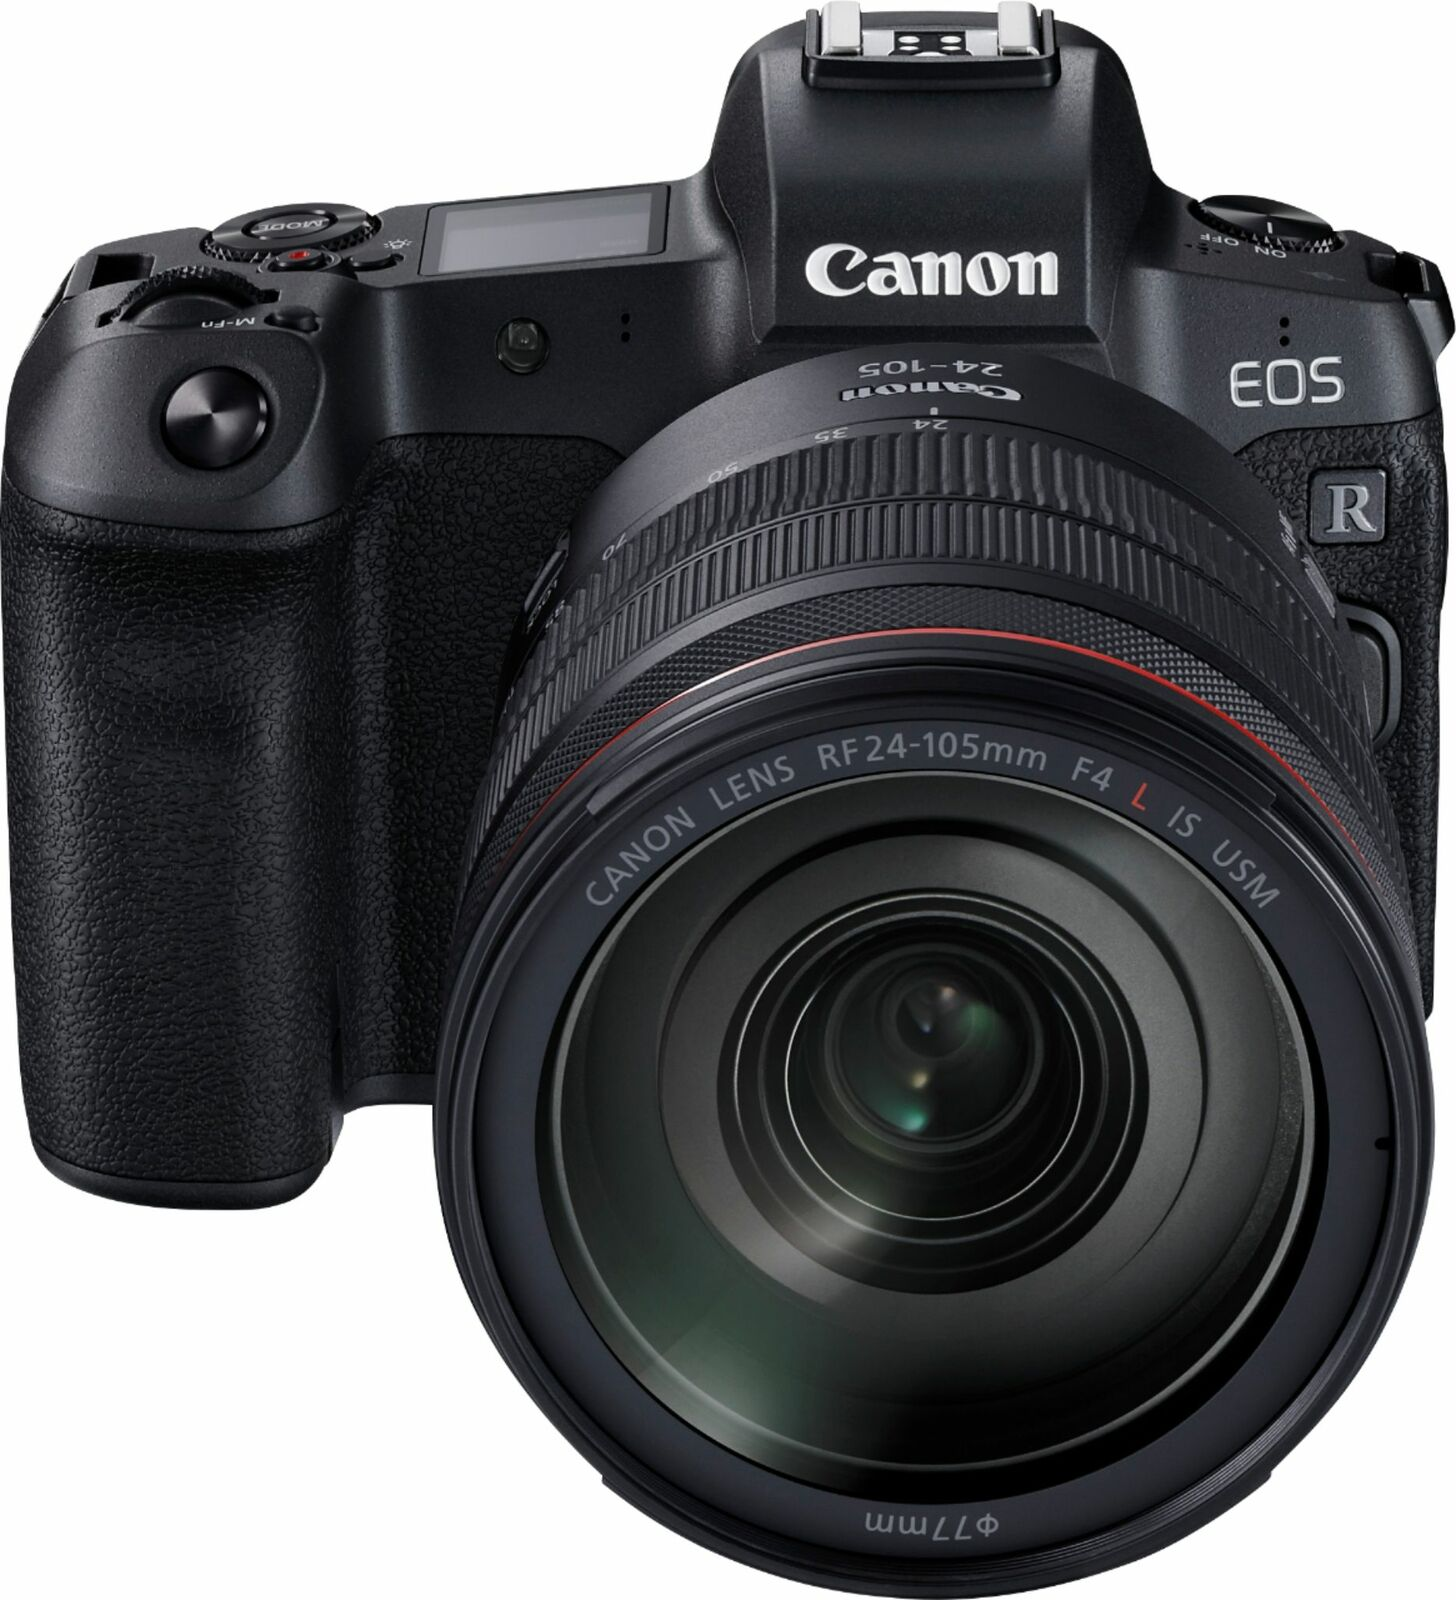 CANON EOS R Mirrorless With RF 24-105mm f/4L IS USM Lens